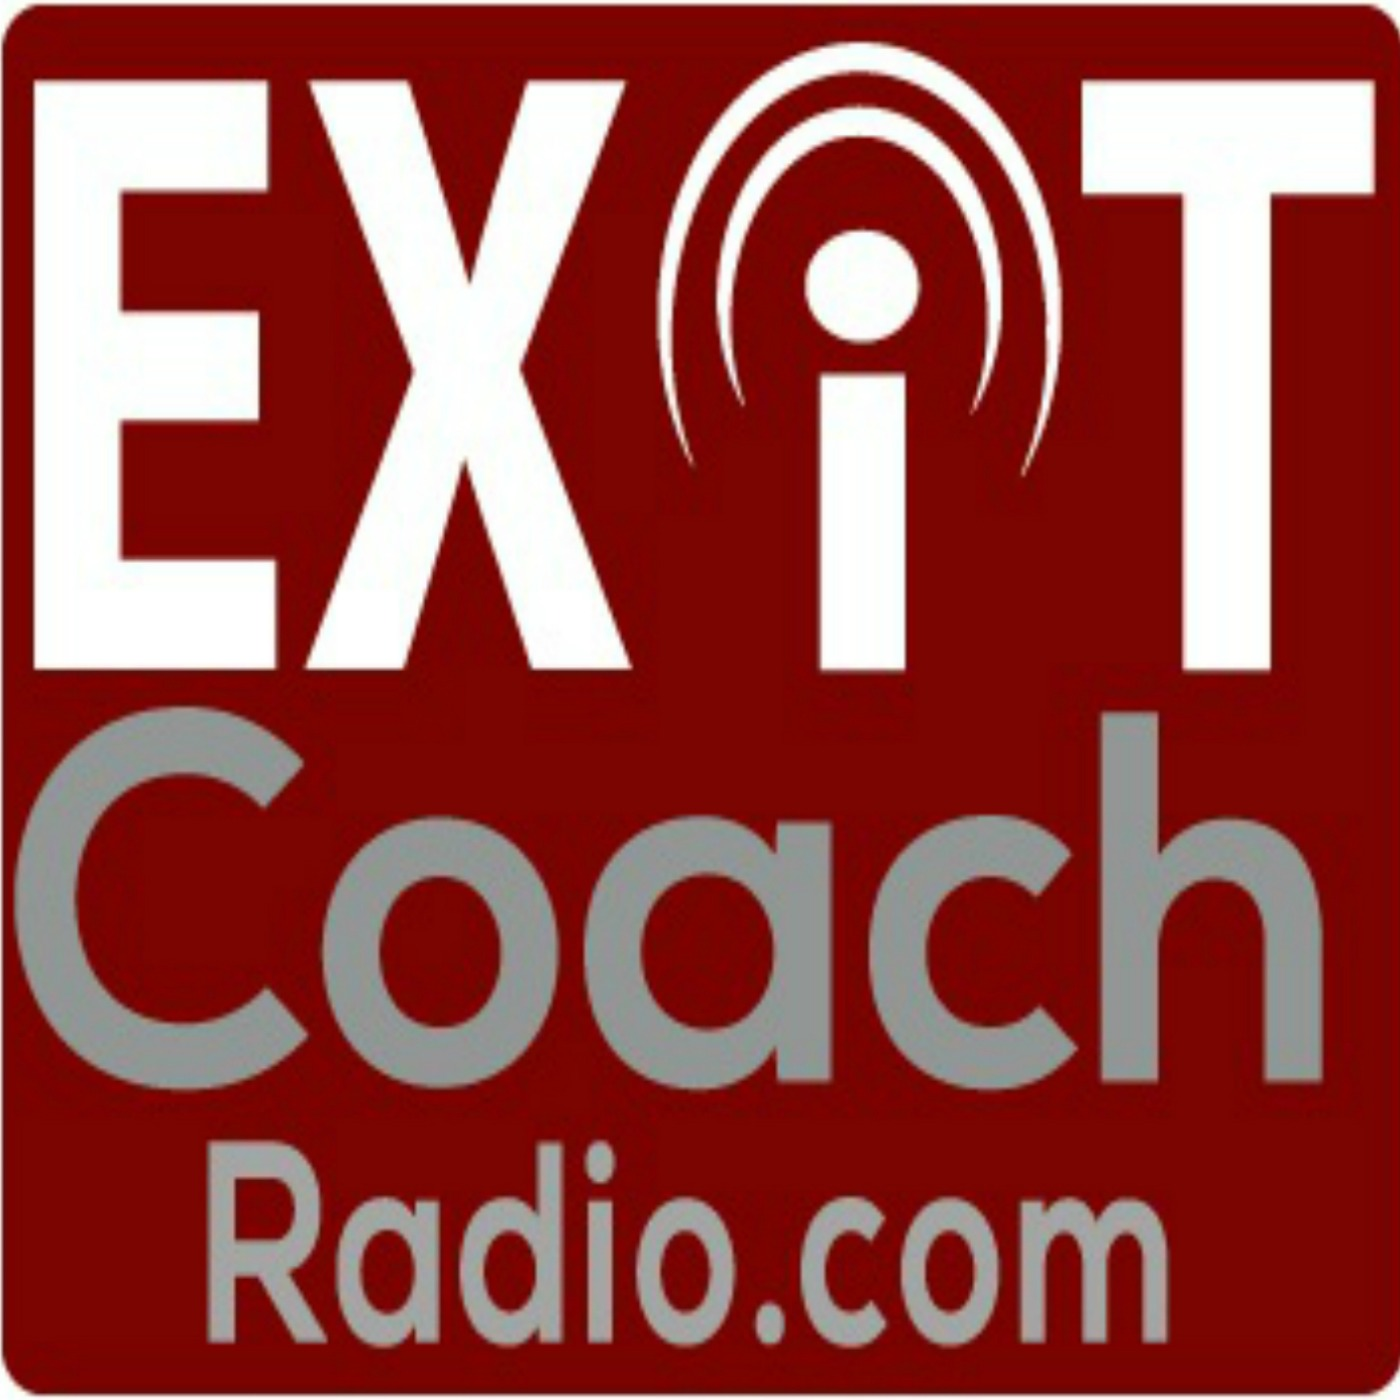 Abby's interview on Exit Coach Radio